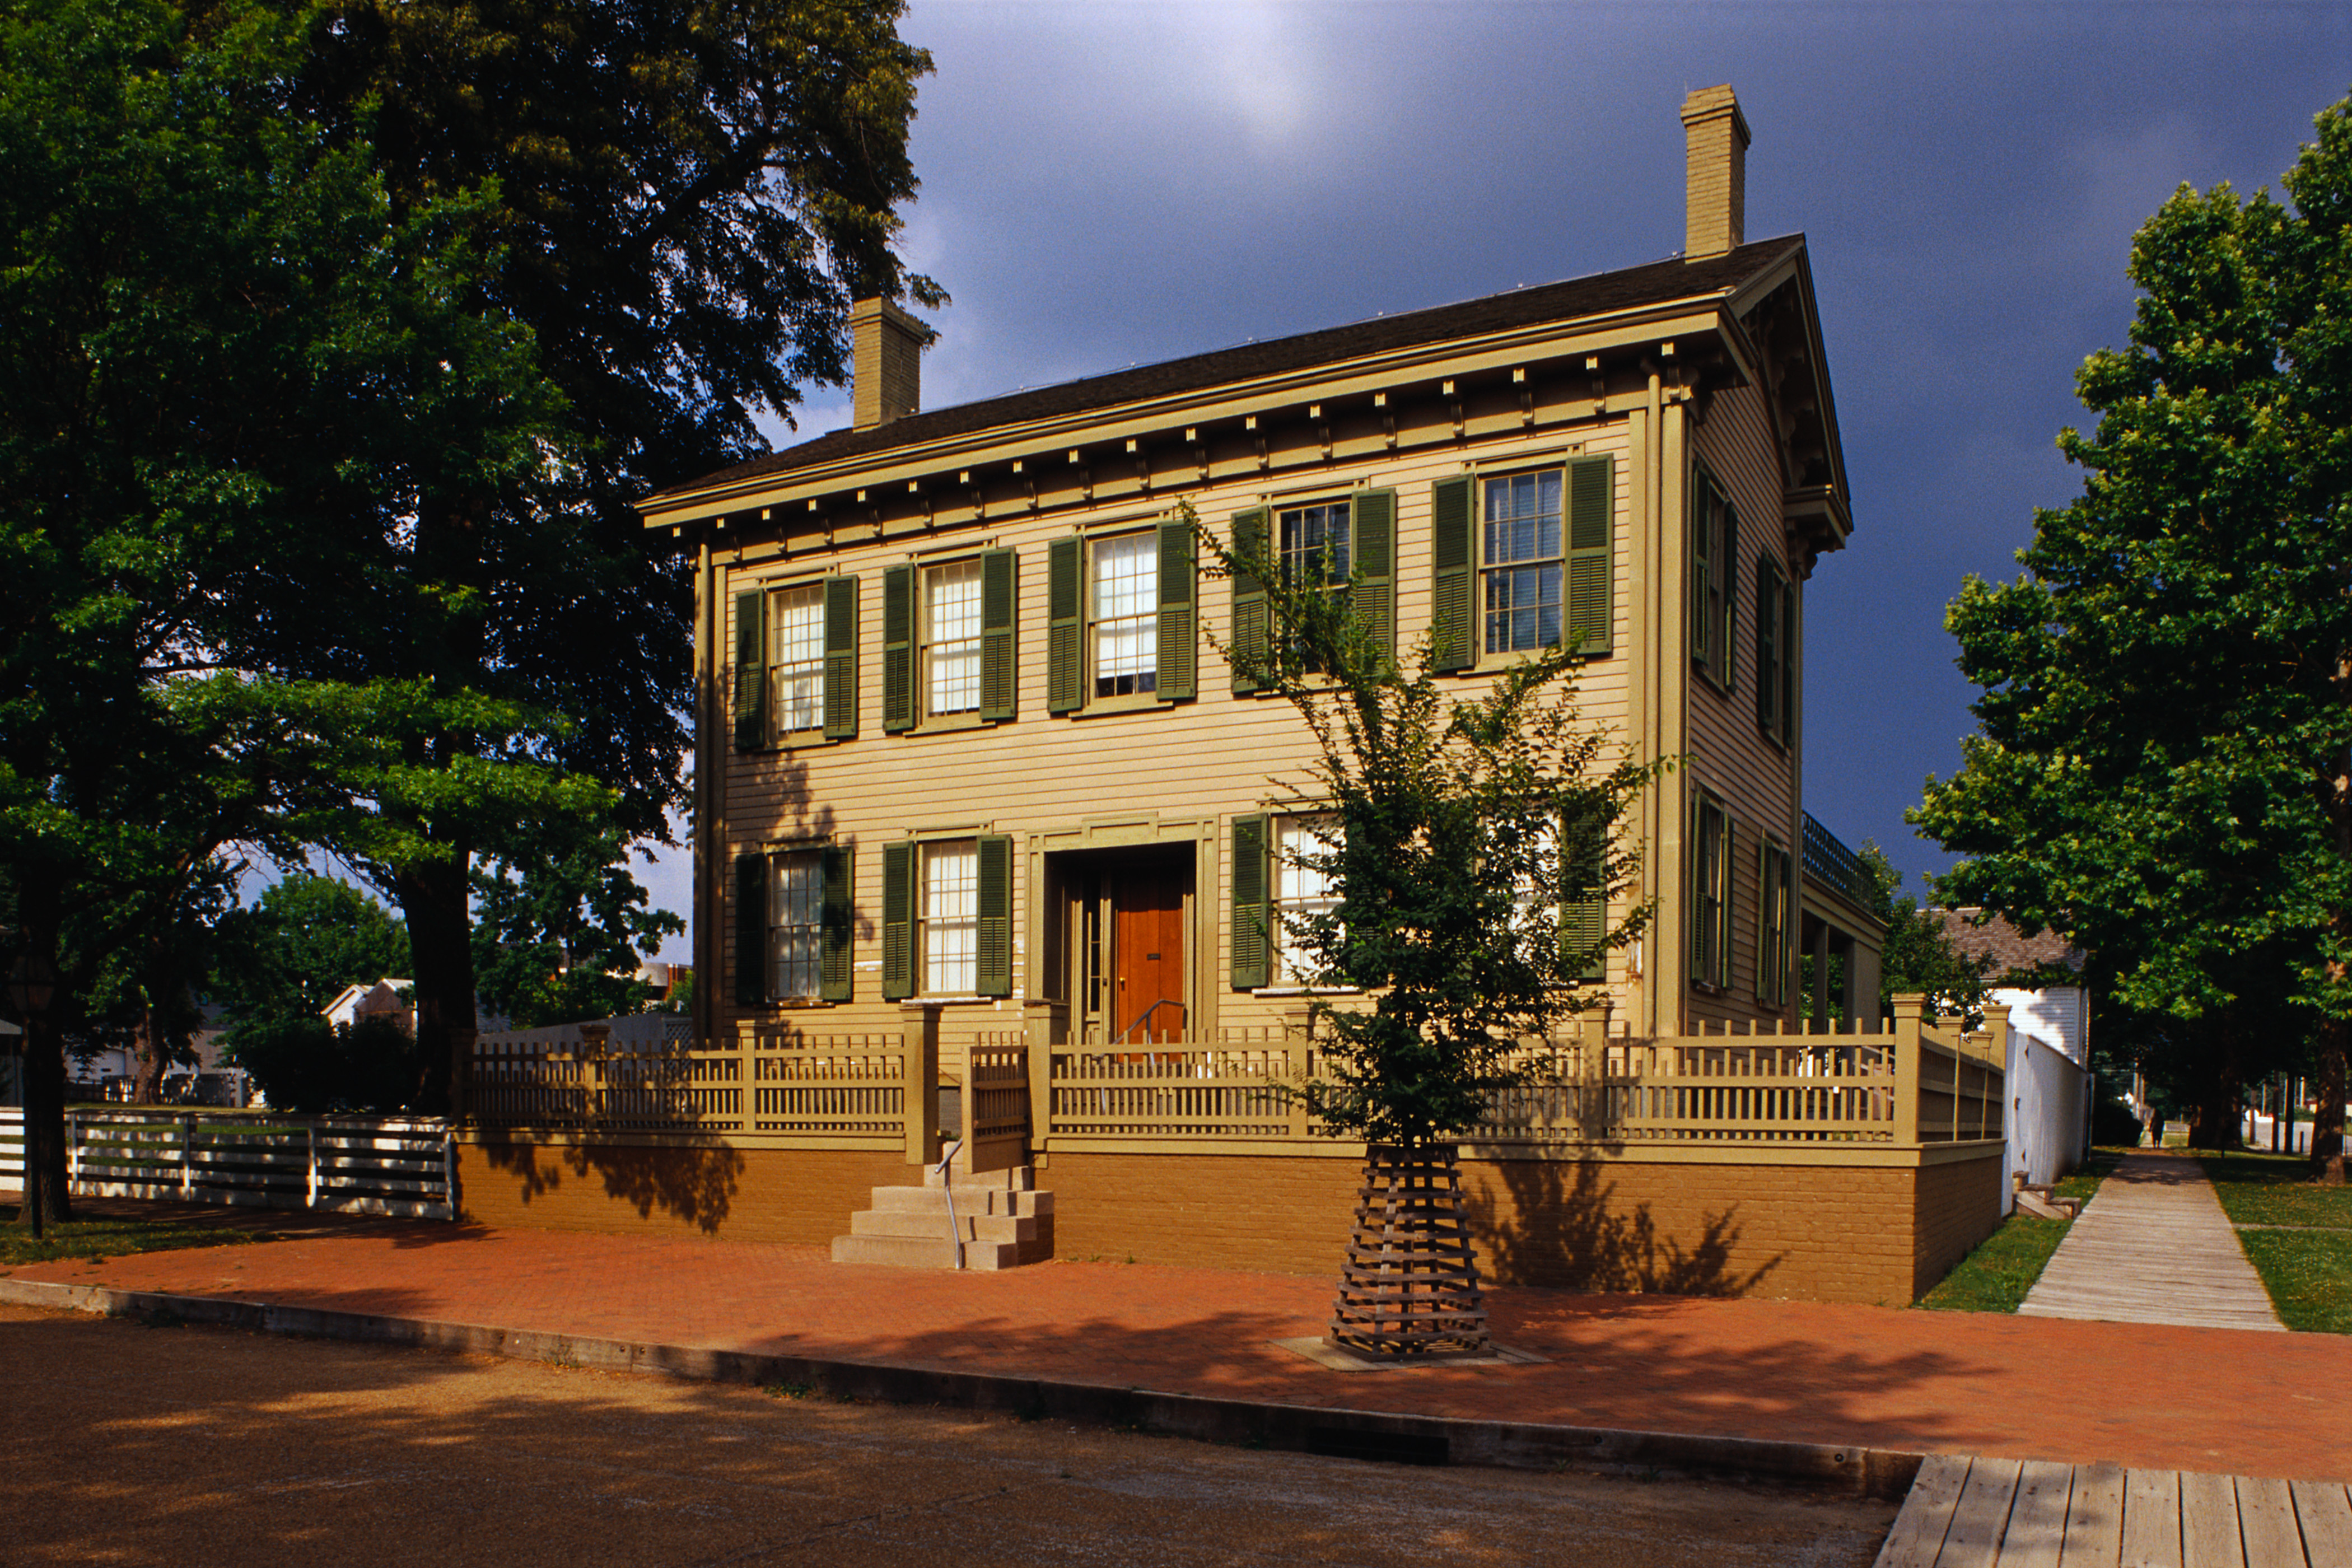 lincoln home national historic site in springfield Illinois